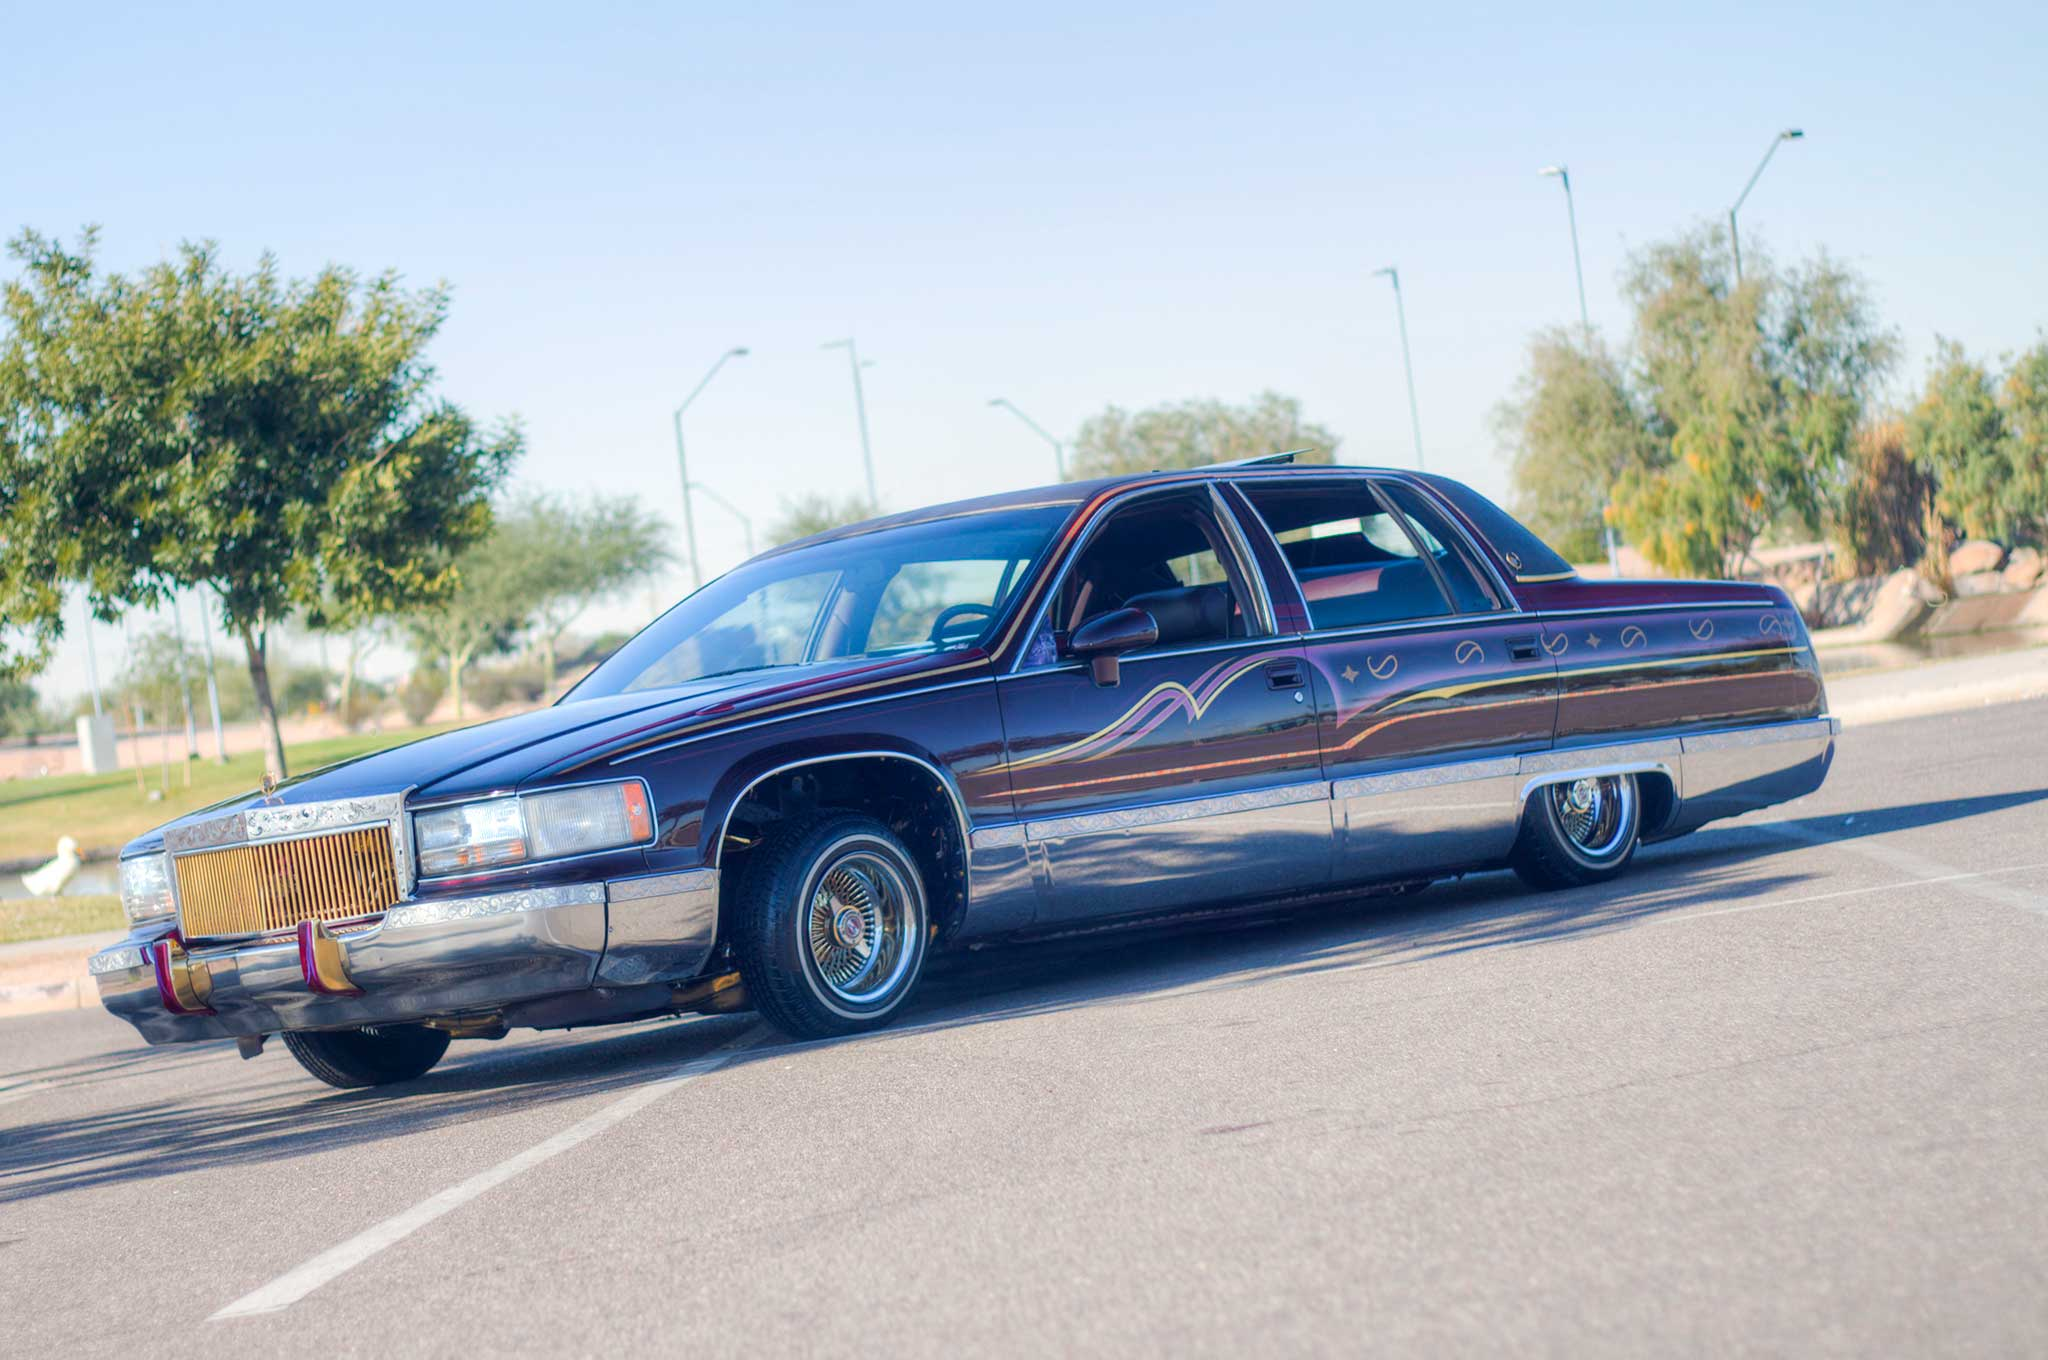 Nissan Colorado Springs >> '93 Cadillac Fleetwood & '84 Oldsmobile Cutlass - The Game Don't Wait - Lowrider